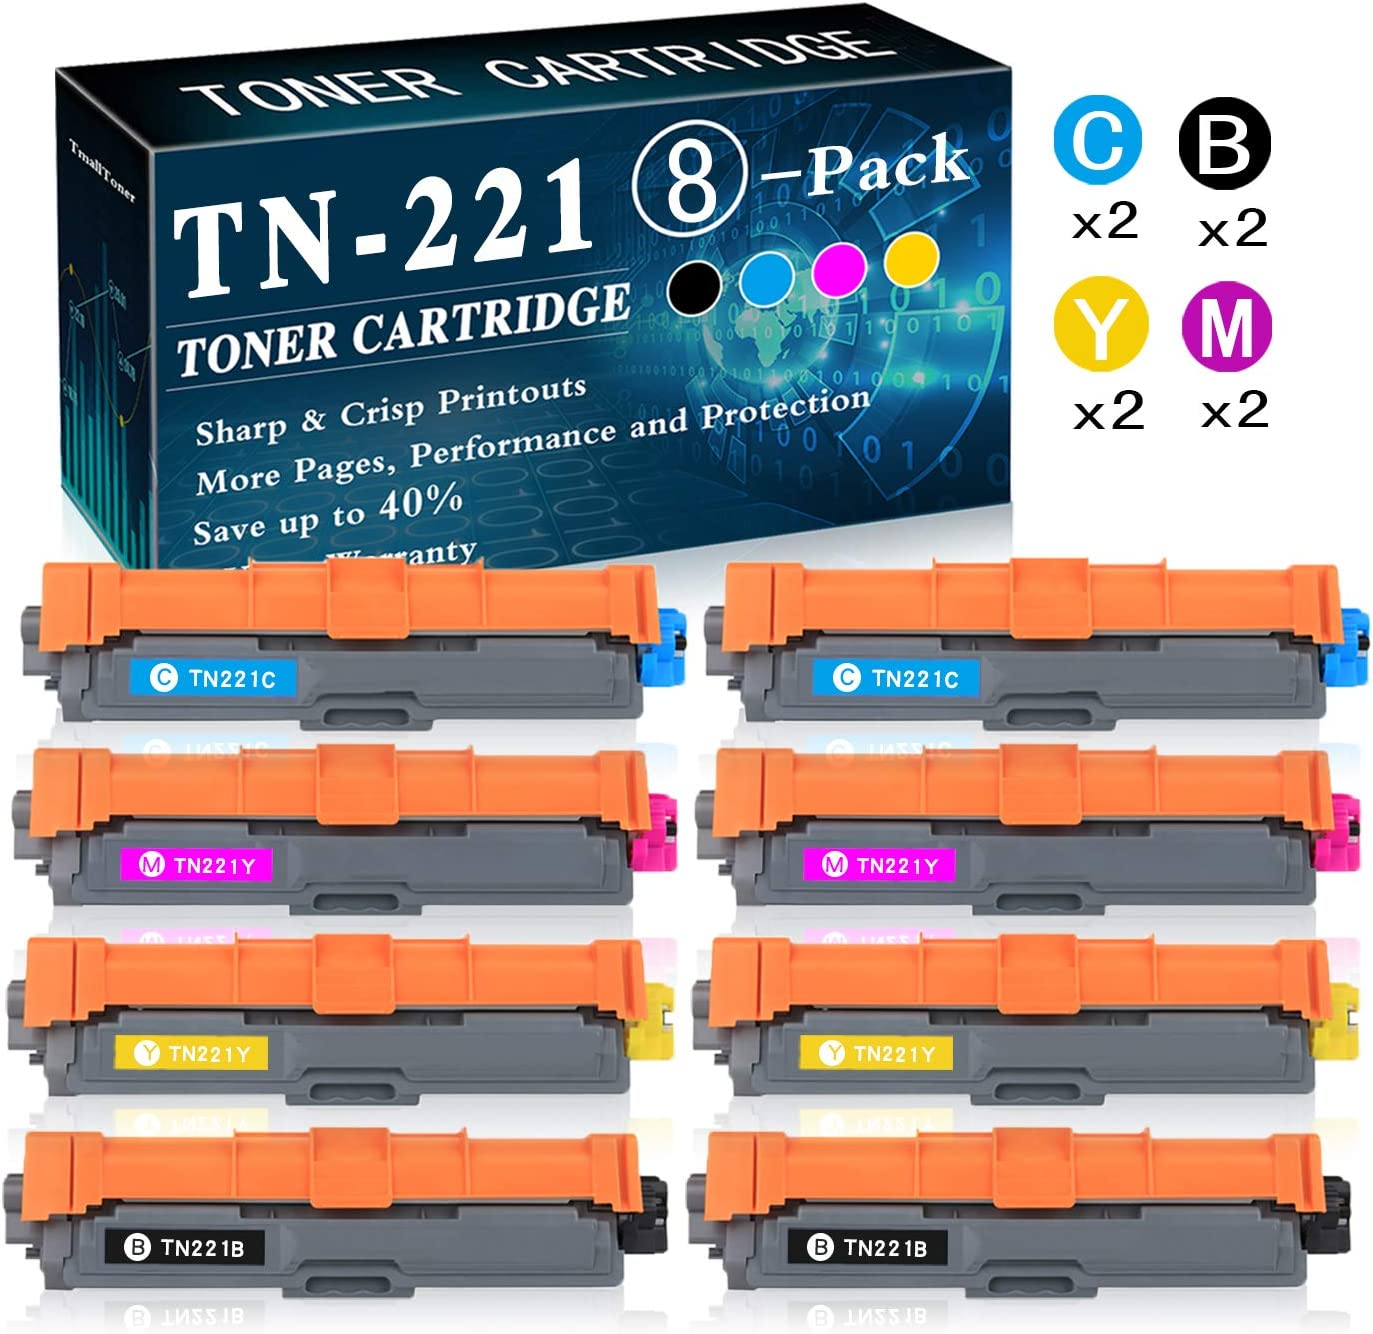 8-Pack(2BK+2C+2M+2Y) TN-225 Toner Cartridge Replacement for Brother Laserjet HL-3140CW HL-3150CDN MFC-9130CW MFC-9330CDW DCP-9015CDW DCP-9020CDN Printer Printer,by TmallToner